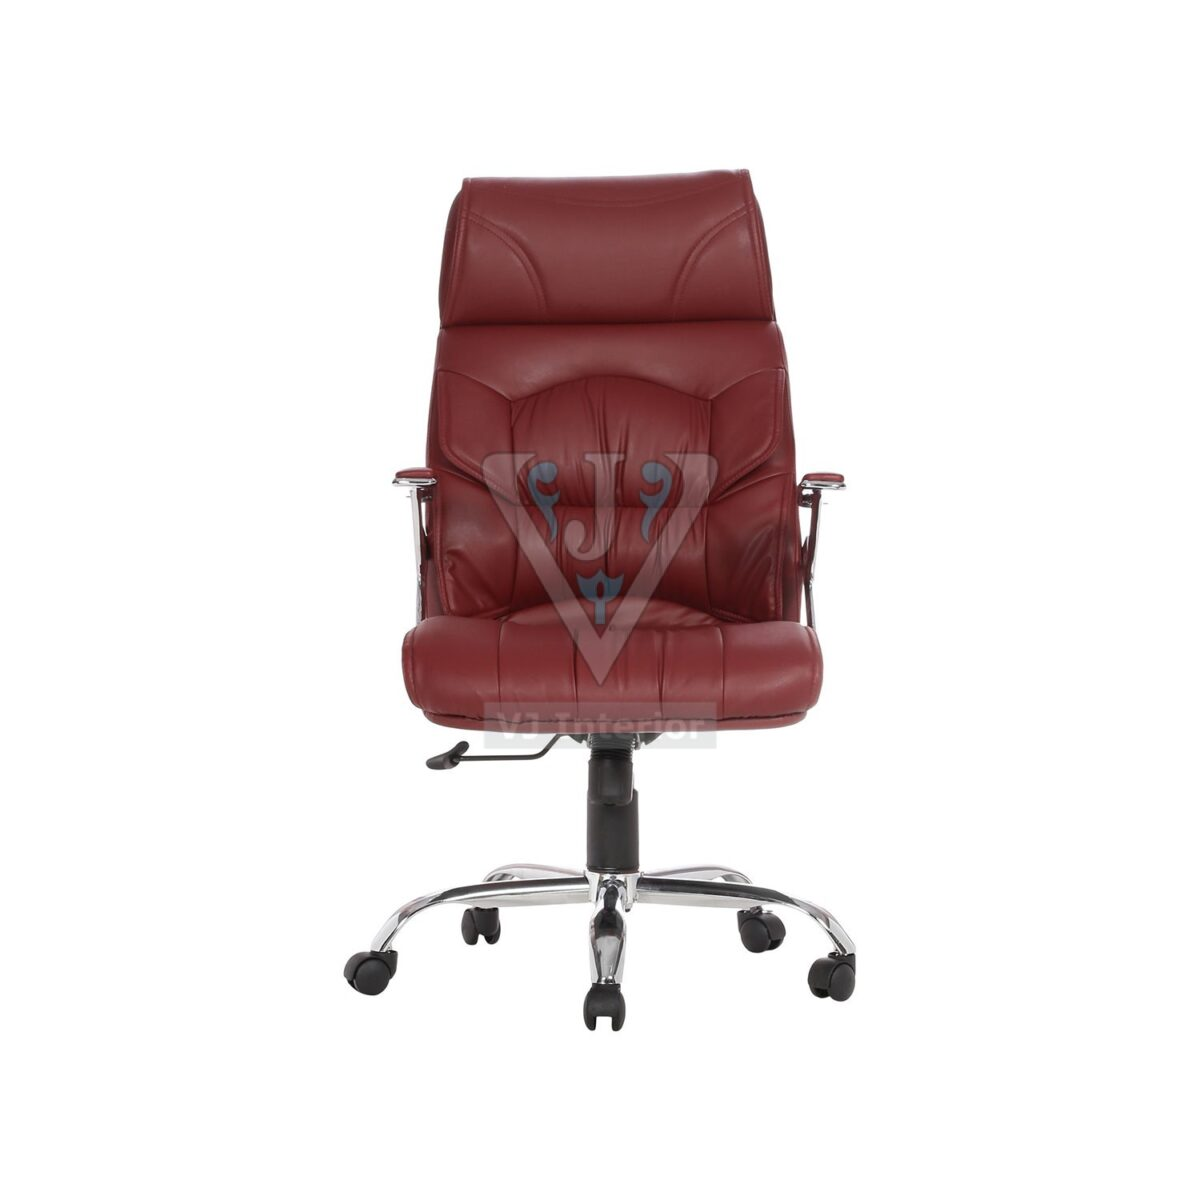 THE MANIJA-DOBLEPIEL EXECUTIVE HB CHAIR